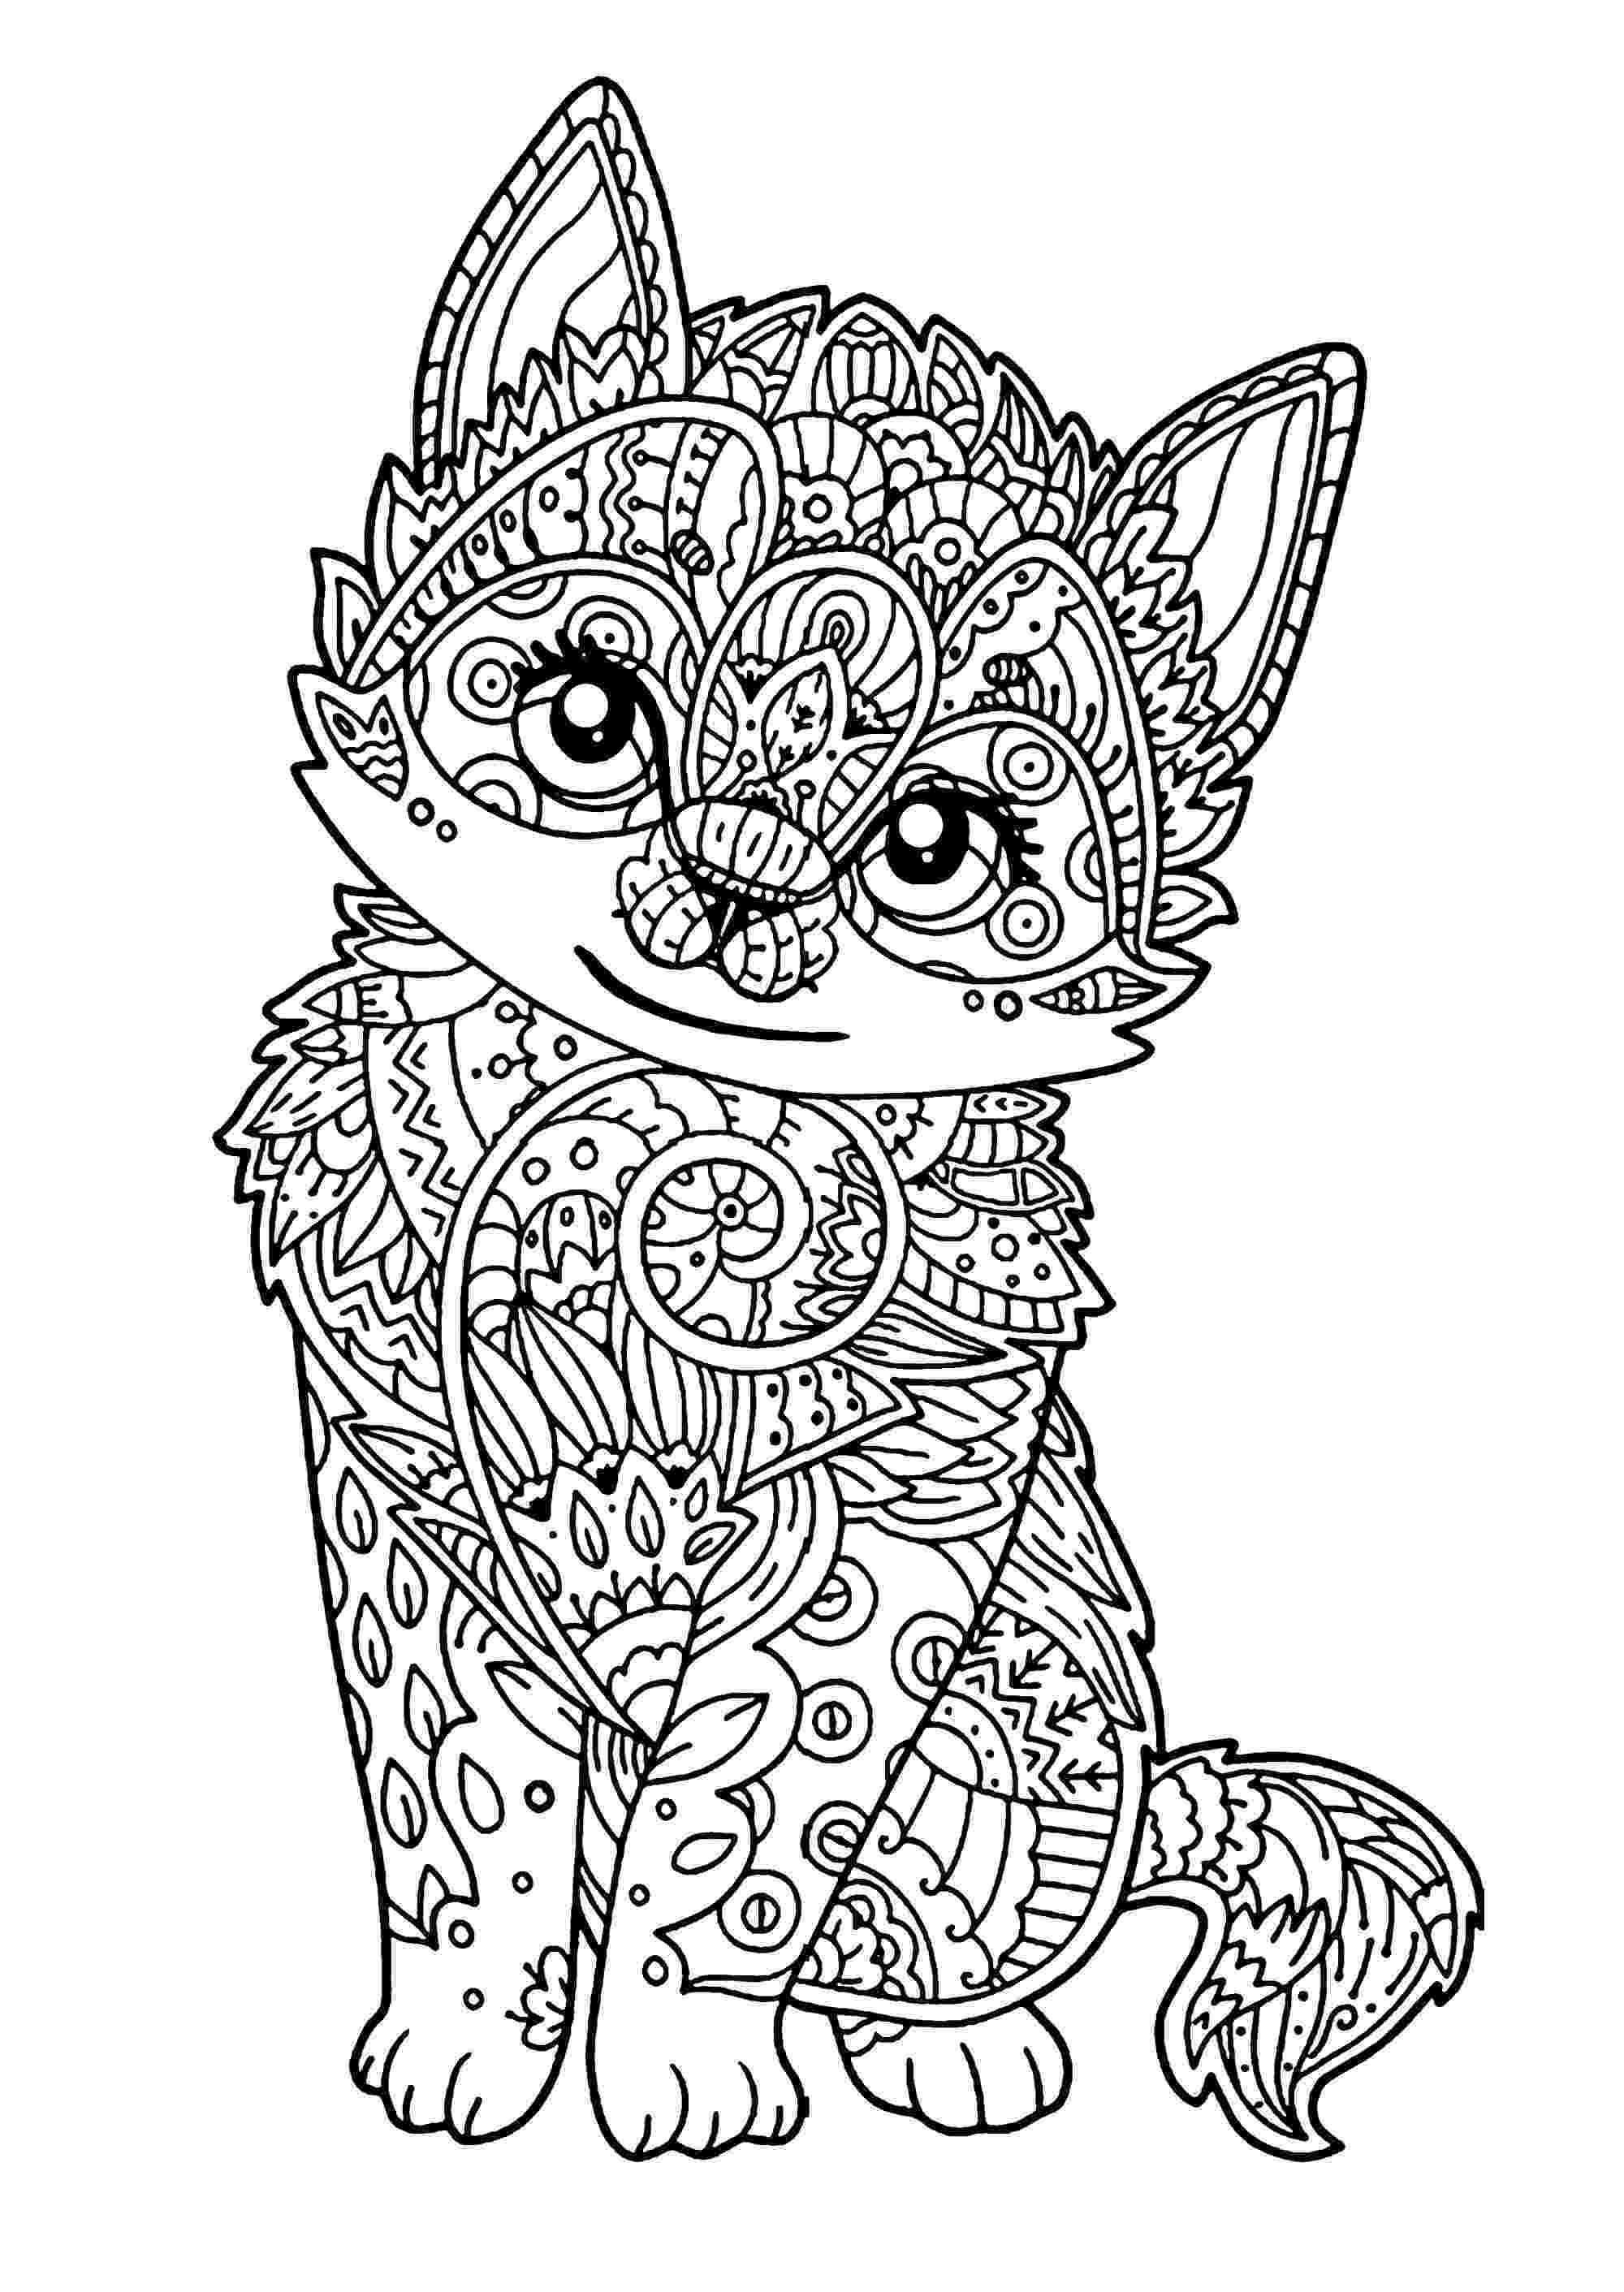 coloring pages of kittens to print the three little kittens coloring books vintage 1 coloring kittens of print pages to